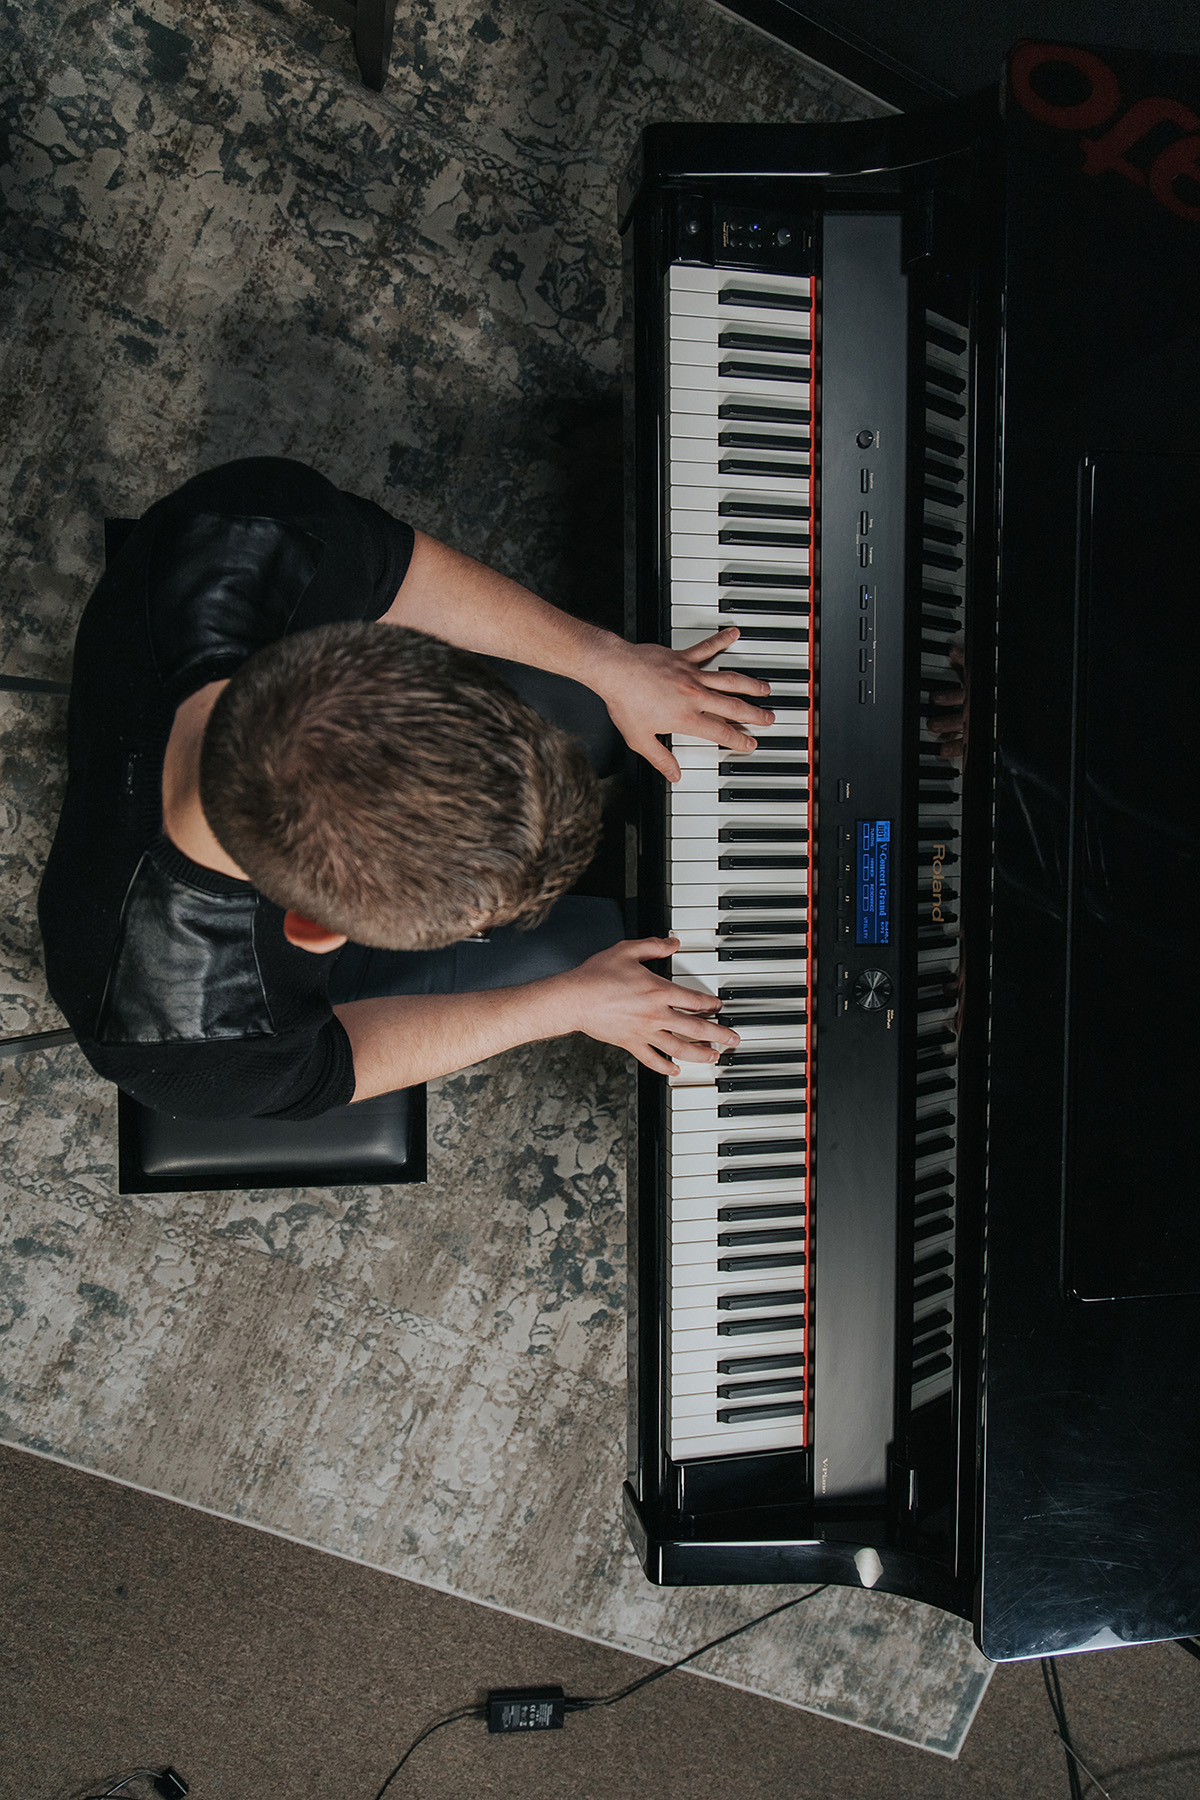 Vertical bird's eye view of Sam (young man with brown hair in black shirt) playing piano.